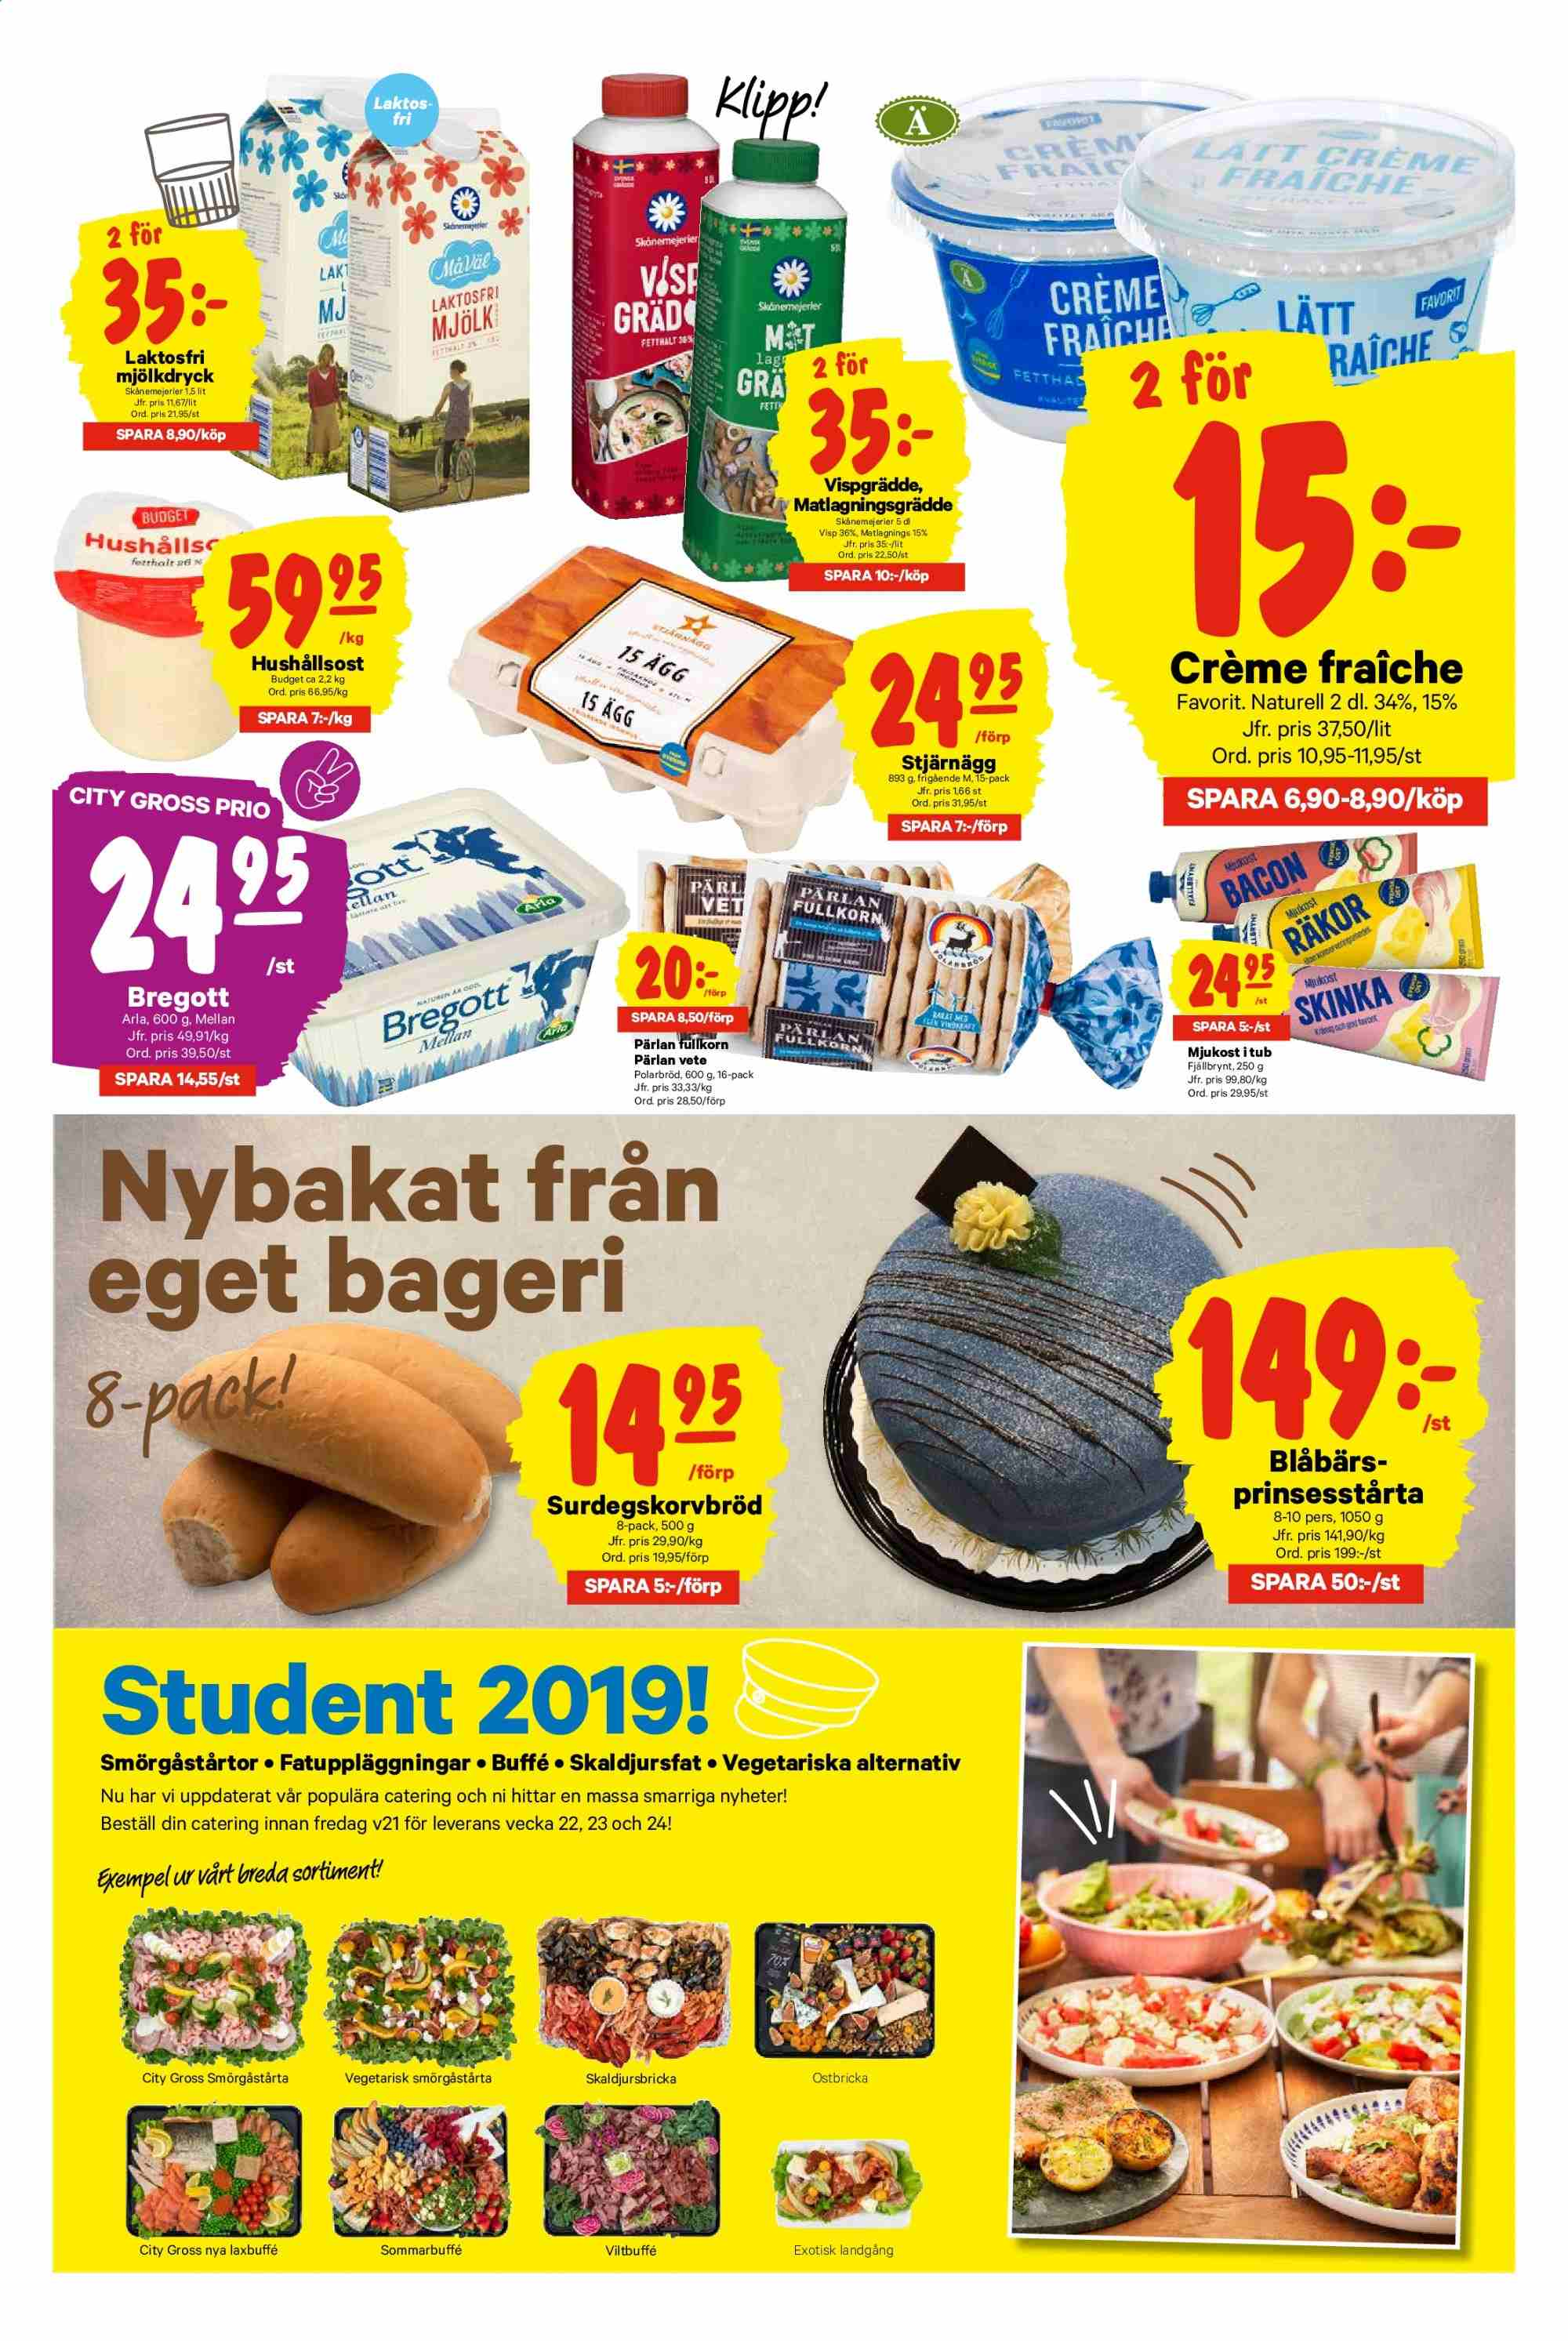 City Gross reklamblad - 29/4 2019 - 5/5 2019. Sida 5.